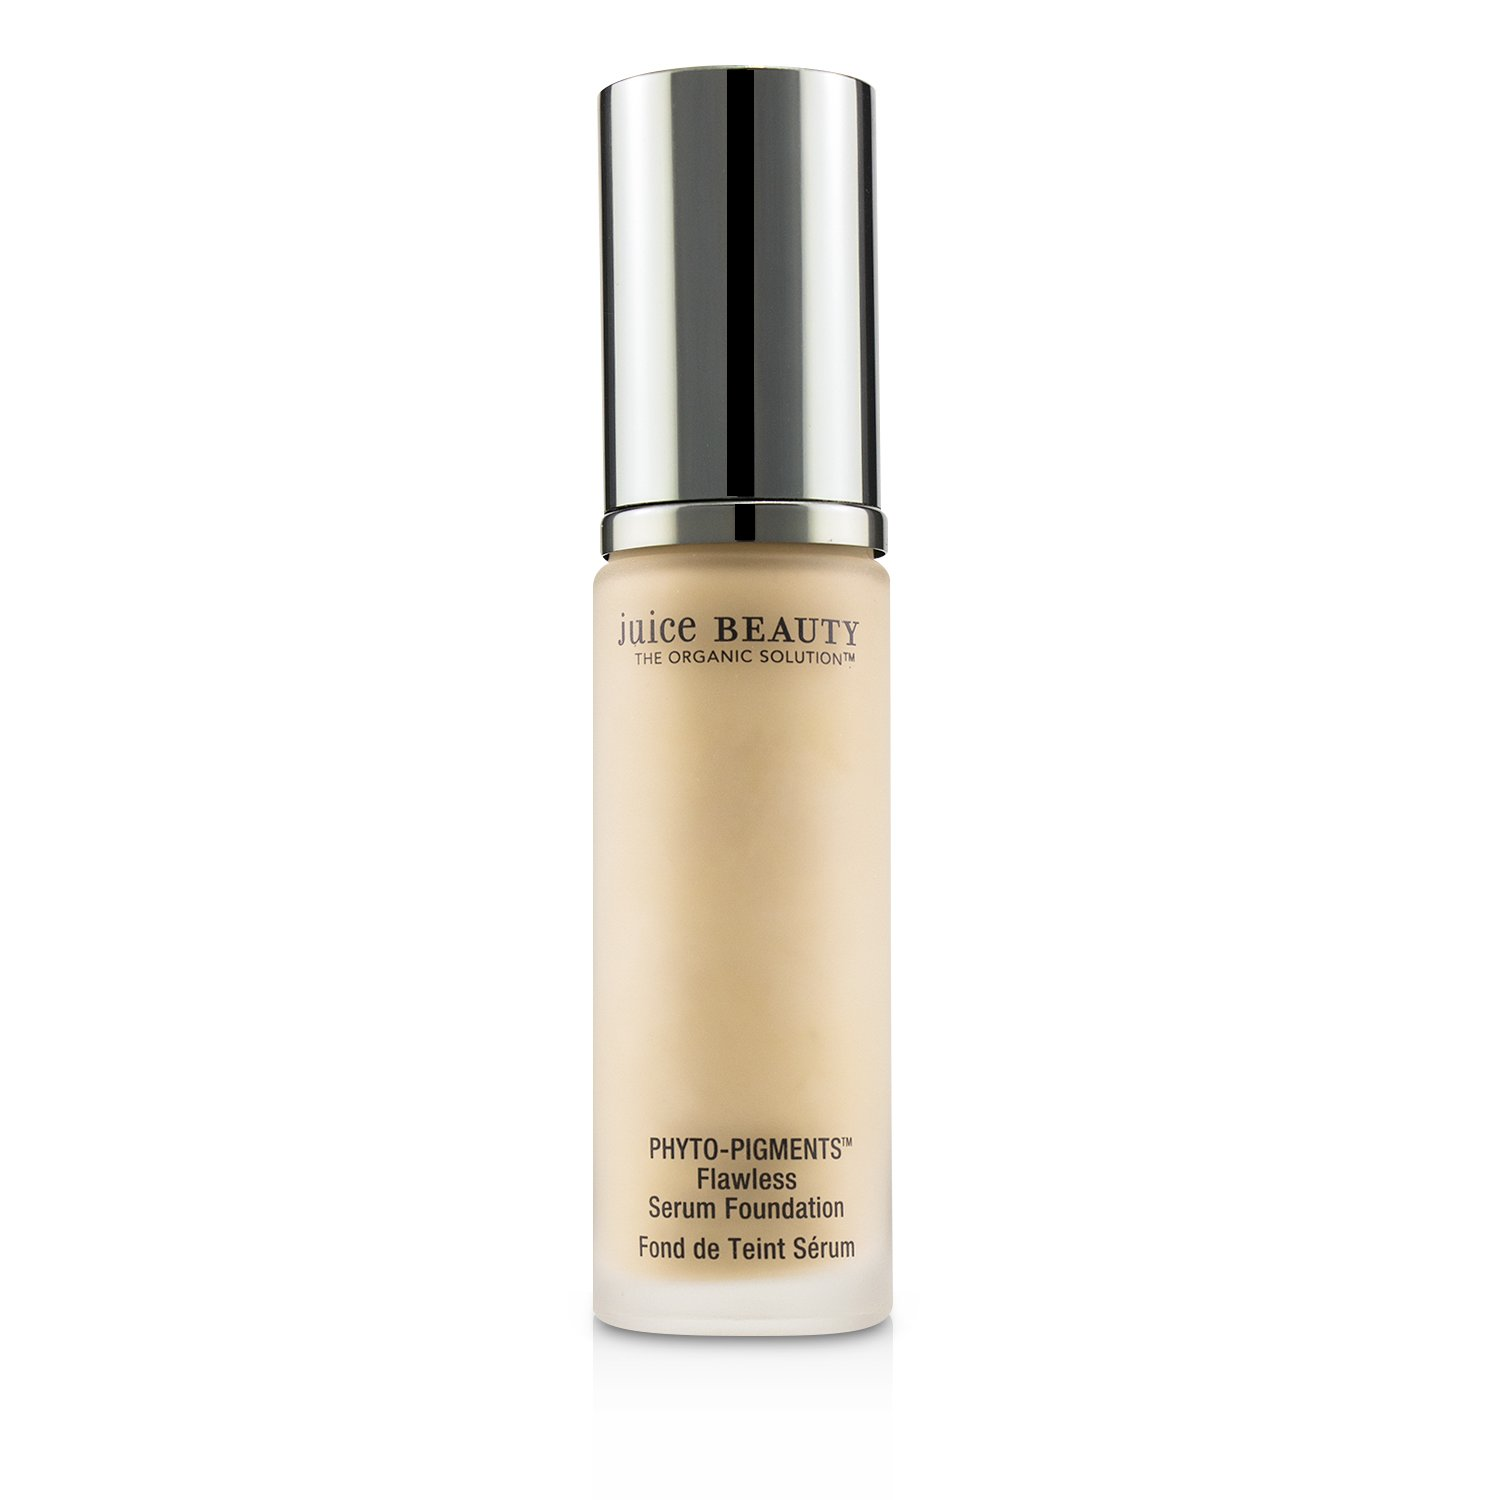 Juice-Beauty-Phyto-Pigments-Flawless-Serum-Foundation thumbnail 4